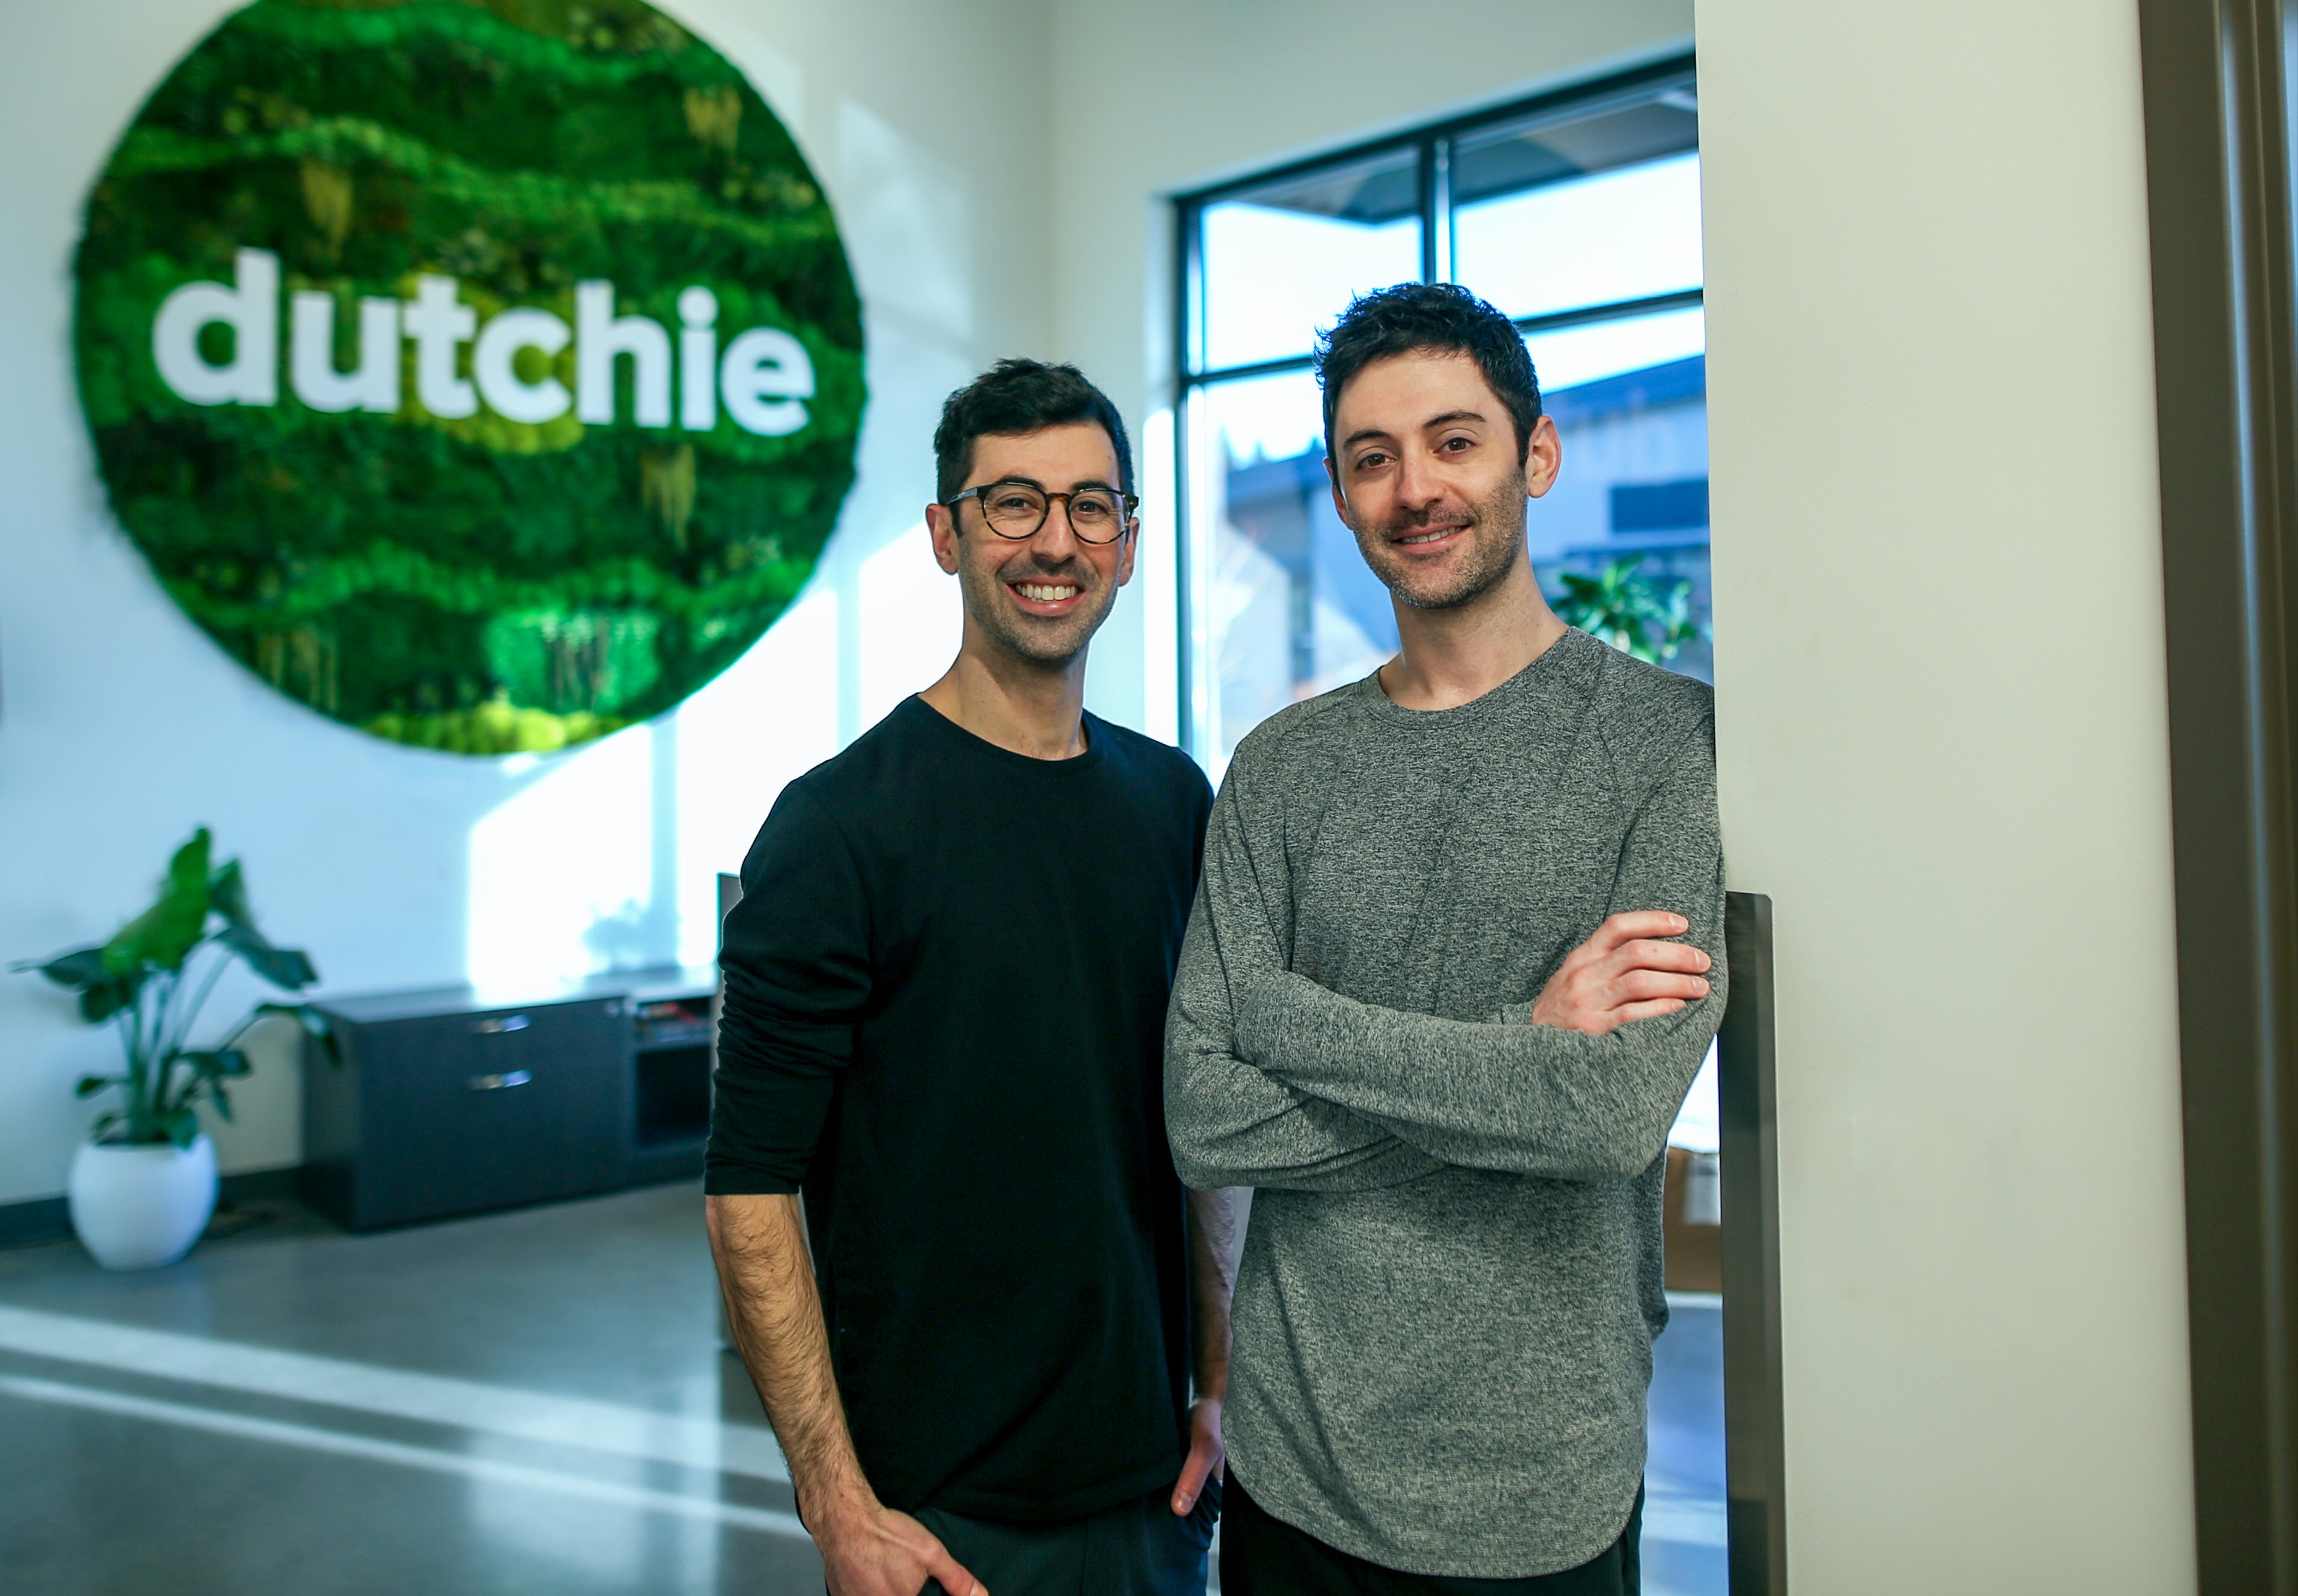 dutchie co-founders, Ross and Zach